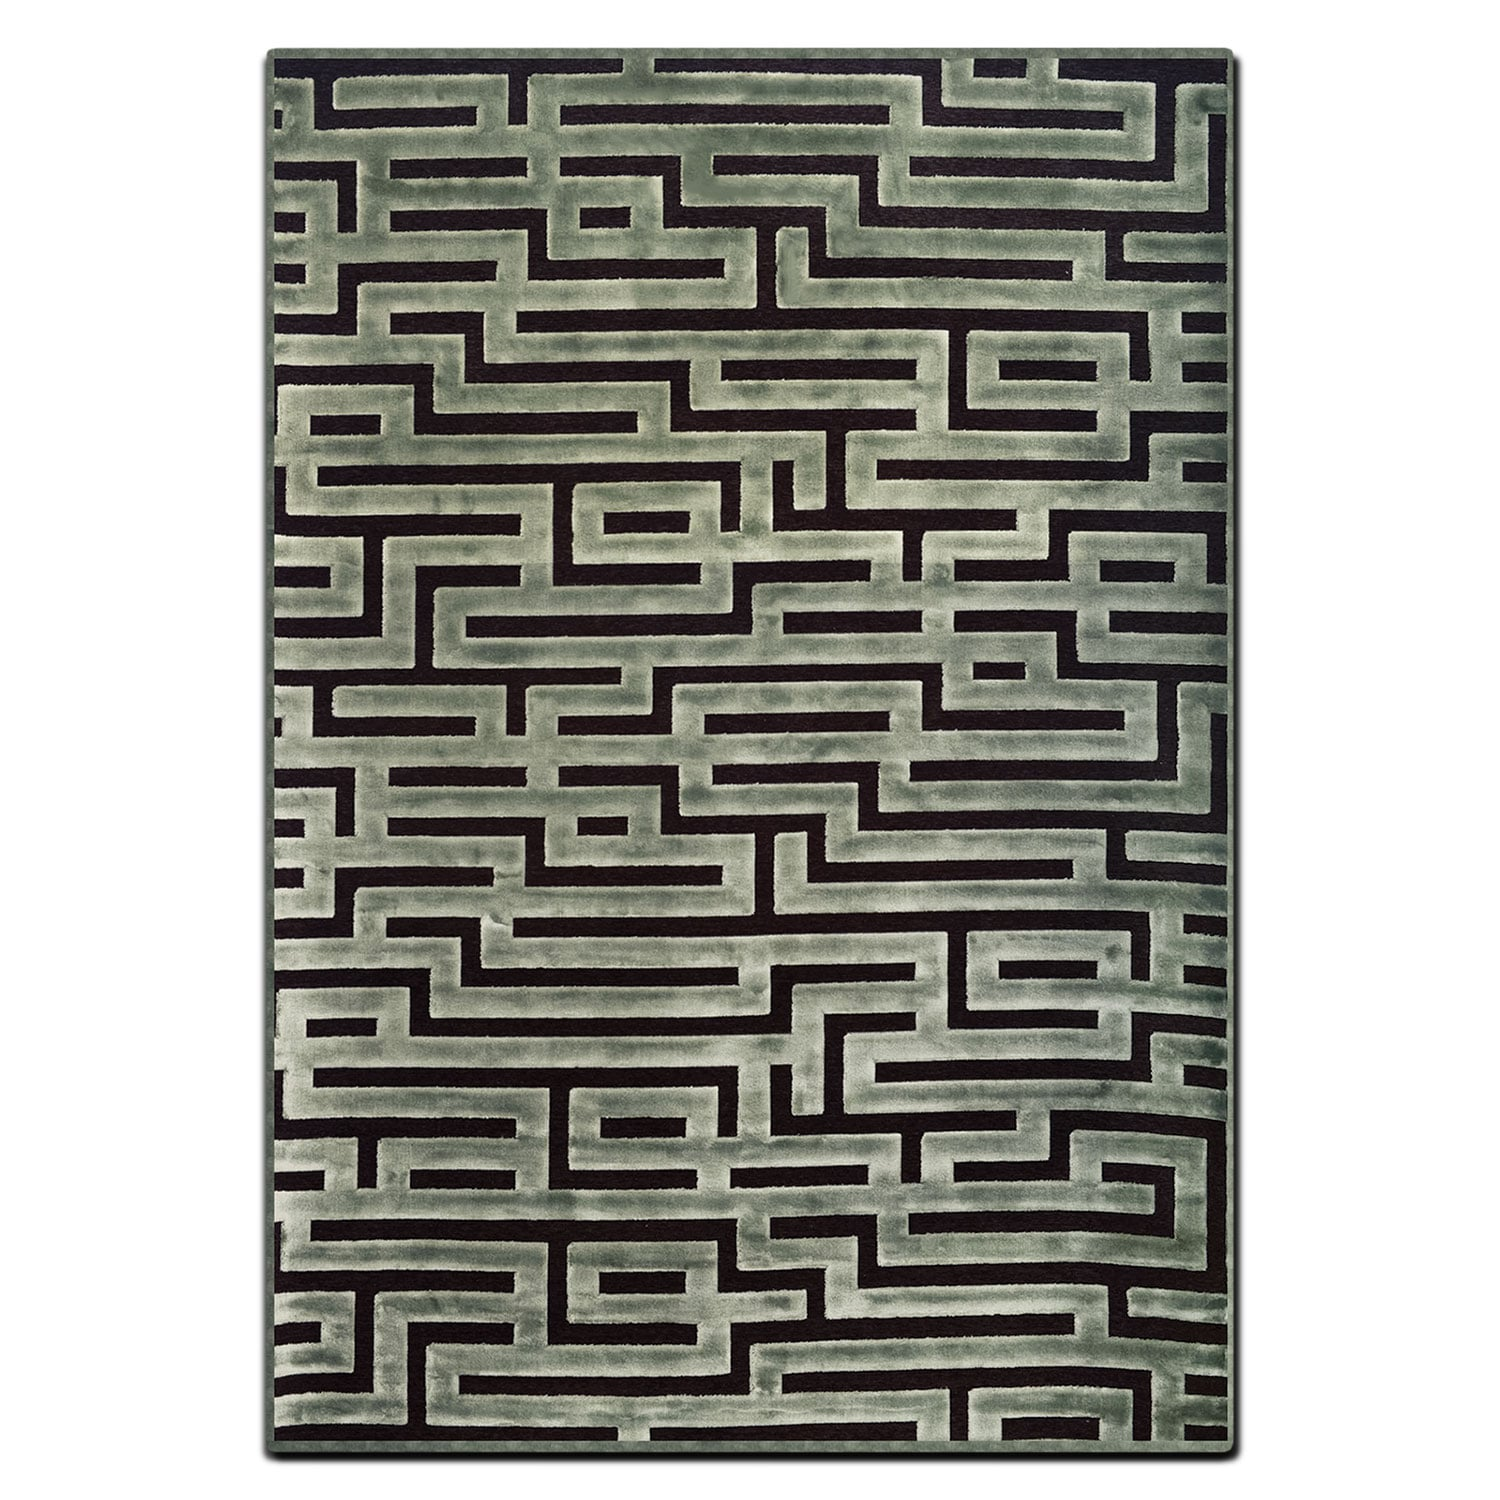 Napa 5' x 8' Area Rug - Seafoam and Charcoal